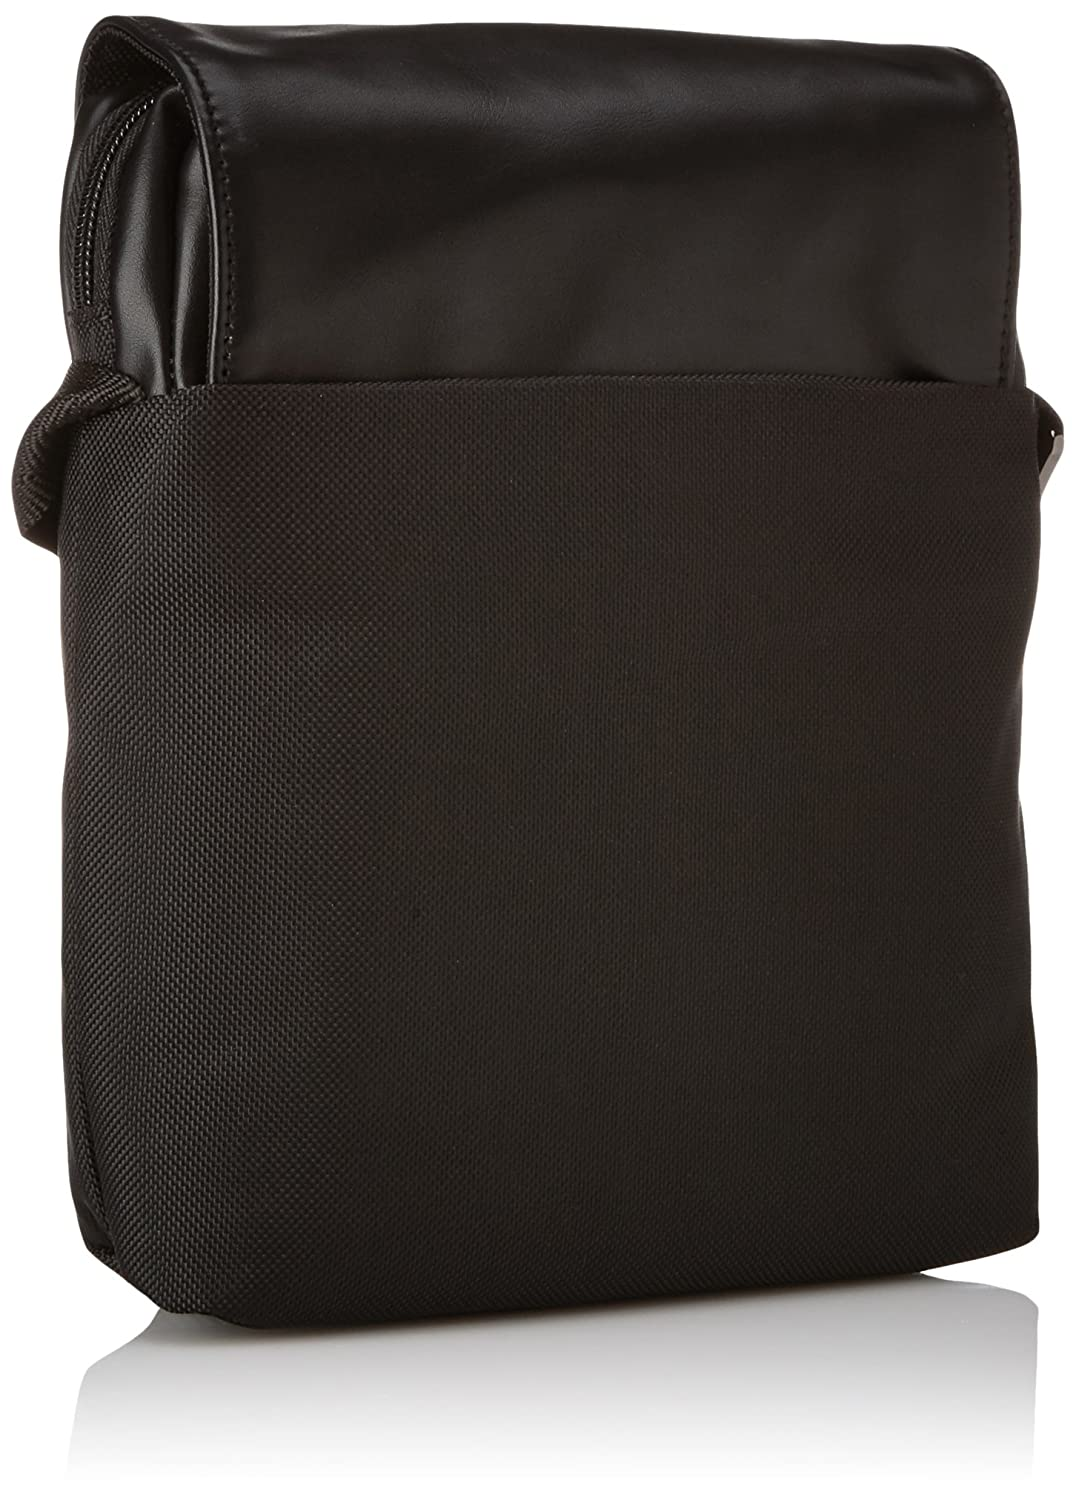 Samsonite Hip-Tech Sac Bandoulière, 22 cm, 49D*09002